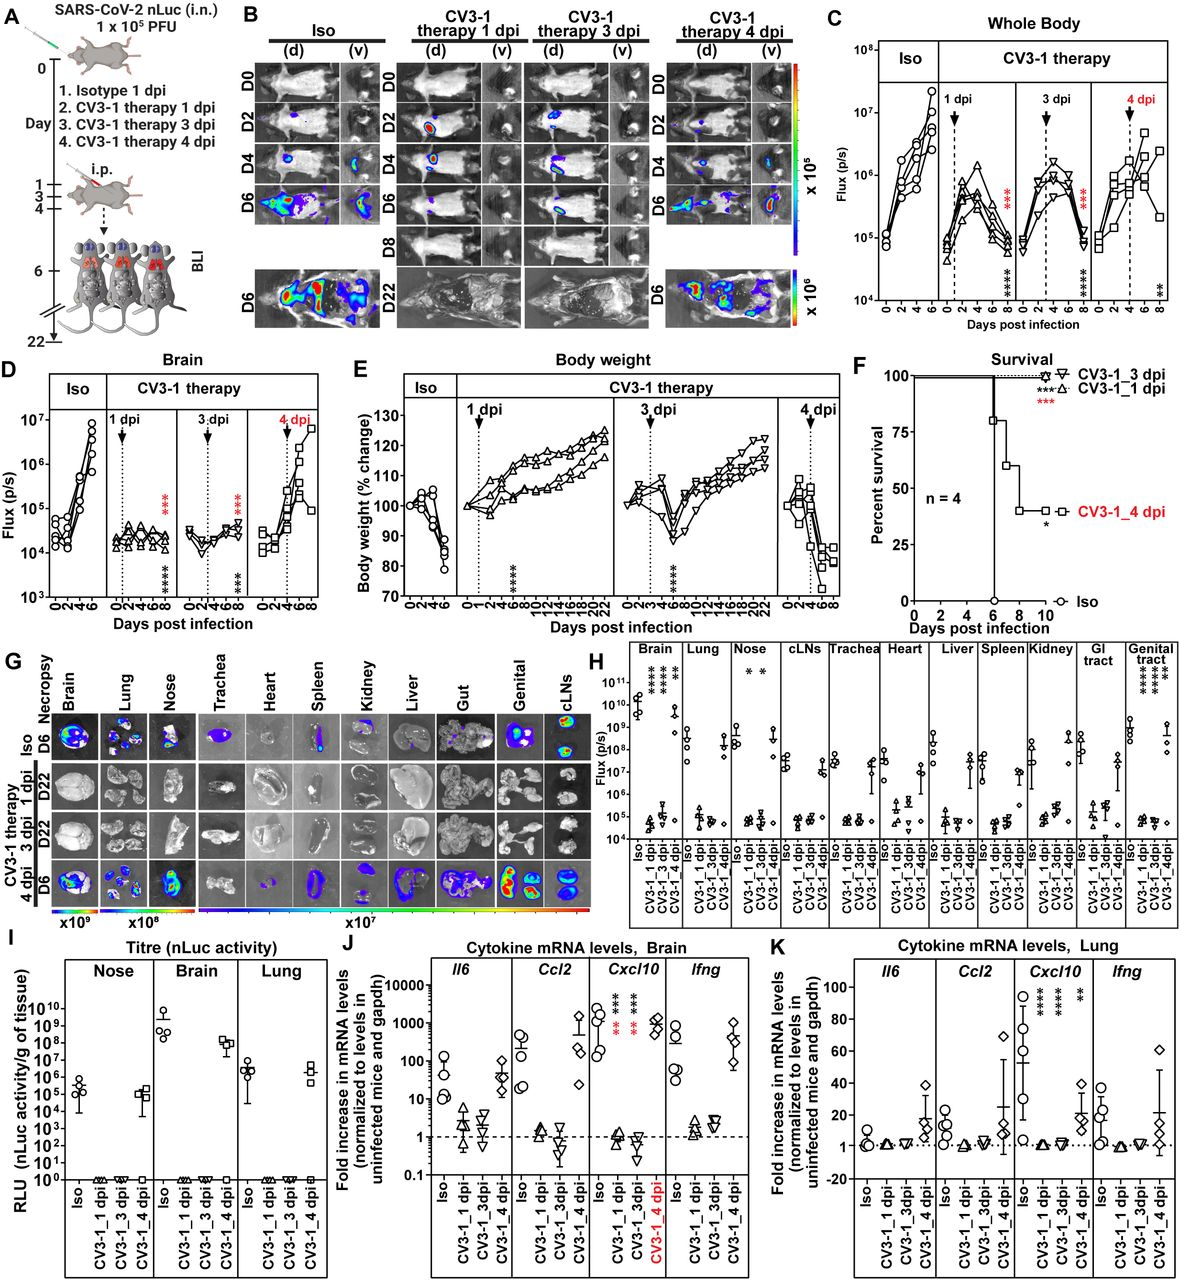 CV3-1 Therapy Protects Mice from Lethal SARS-CoV-2 Infection. (A) Experimental design to test in vivo efficacy of CV3-1 administered i.p. (12.5 mg/kg body weight) at indicated times after i.n. challenge of K18-hACE2 mice with SARS-CoV-2 nLuc followed by non-invasive BLI every 2 days. Human IgG1 treated (12.5 mg/kg body weight) mice were the control cohort. (B) Representative images from temporal BLI of SARS-CoV-2-nLuc-infected mice in ventral (v) and dorsal (d) positions at the indicated dpi and after necropsy. (C-D) Temporal quantification of nLuc signal acquired non-invasively as flux (photons/sec) in indicated regions of each mice. (E) Temporal changes in mouse body weight at indicated dpi with initial body weight set to 100%. (F) Kaplan-Meier survival curves of mice statistically compared by log-rank (Mantel-Cox) test for experiment as in A. (G, H) Ex vivo imaging of indicated organs and quantification of nLuc signal as flux(photons/sec) at indicated dpi after necropsy. (I) Viral loads estimated as nLuc activity/g of indicated organs using Vero E6 cells as targets. Non-detectable virus amounts were set to 1. (J, K) Cytokine mRNA levels in lung and brain tissues after necropsy. The data was normalized to Gapdh in the same sample and that in uninfected mice. Viral loads (I) and inflammatory cytokine profile (J, K) were determined after necropsy at times indicated in G. Each curve in (C)-(E) and each data point in (H)-(K) represents an individual mouse. CV3-1 treatment times are indicated in (C)-(E). Grouped data in (C)-(K) were analyzed by 2-way ANOVA followed by Dunnett's or Tukey's multiple comparison tests. Statistical significance for group comparisons to isotype control are shown in black and for those under CV3-1 therapies to 4 dpi-treated cohorts are shown in red. ∗, p